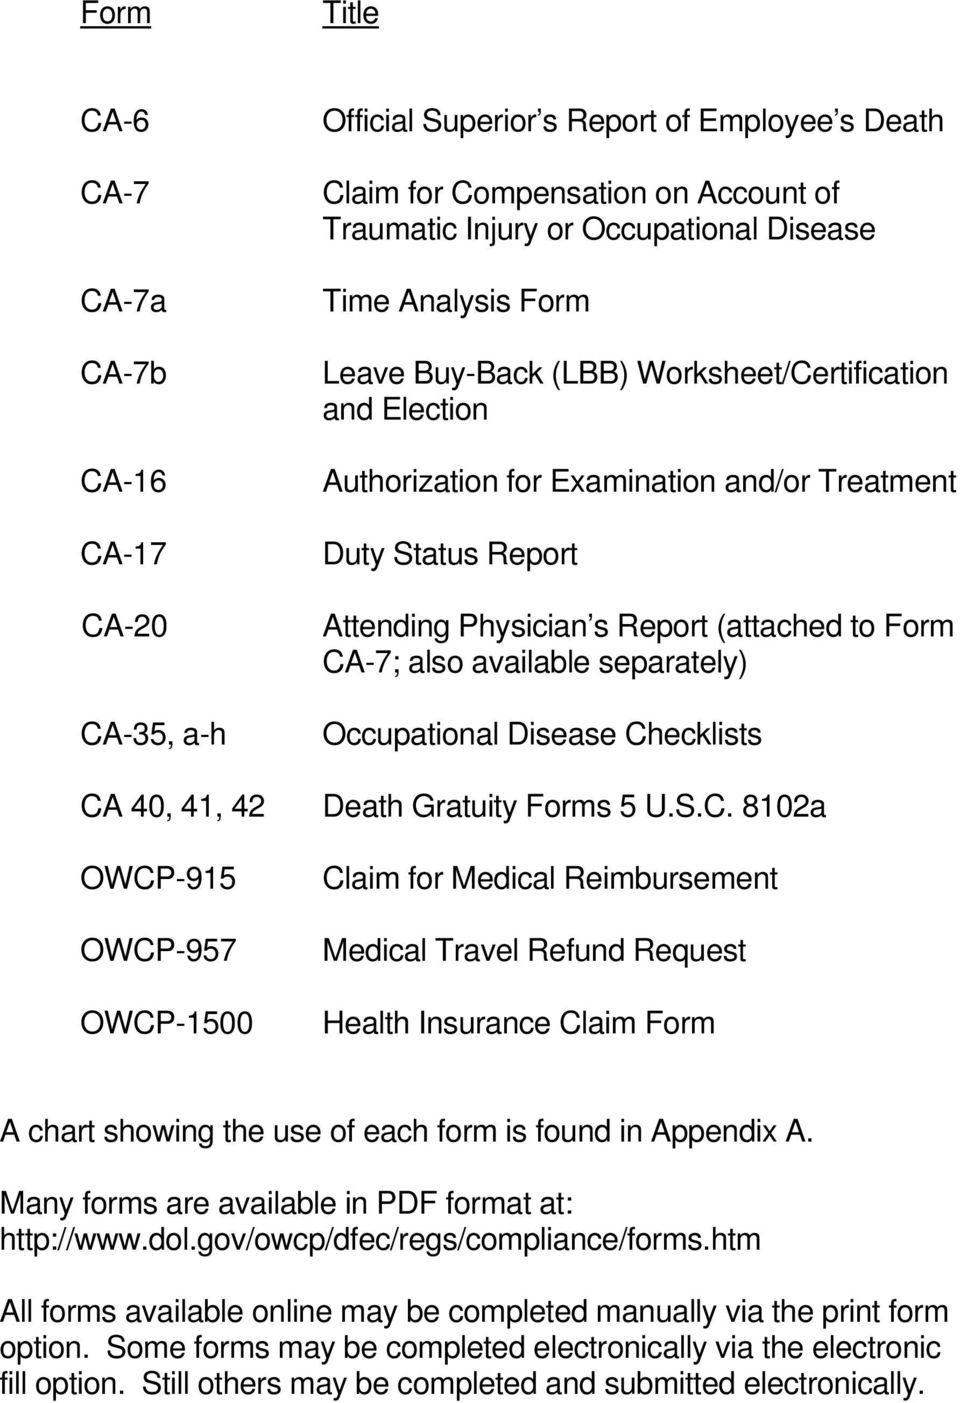 Report (attached to Form CA-7; also available separately) Occupational Disease Checklists Death Gratuity Forms 5 U.S.C. 8102a Claim for Medical Reimbursement Medical Travel Refund Request Health Insurance Claim Form A chart showing the use of each form is found in Appendix A.